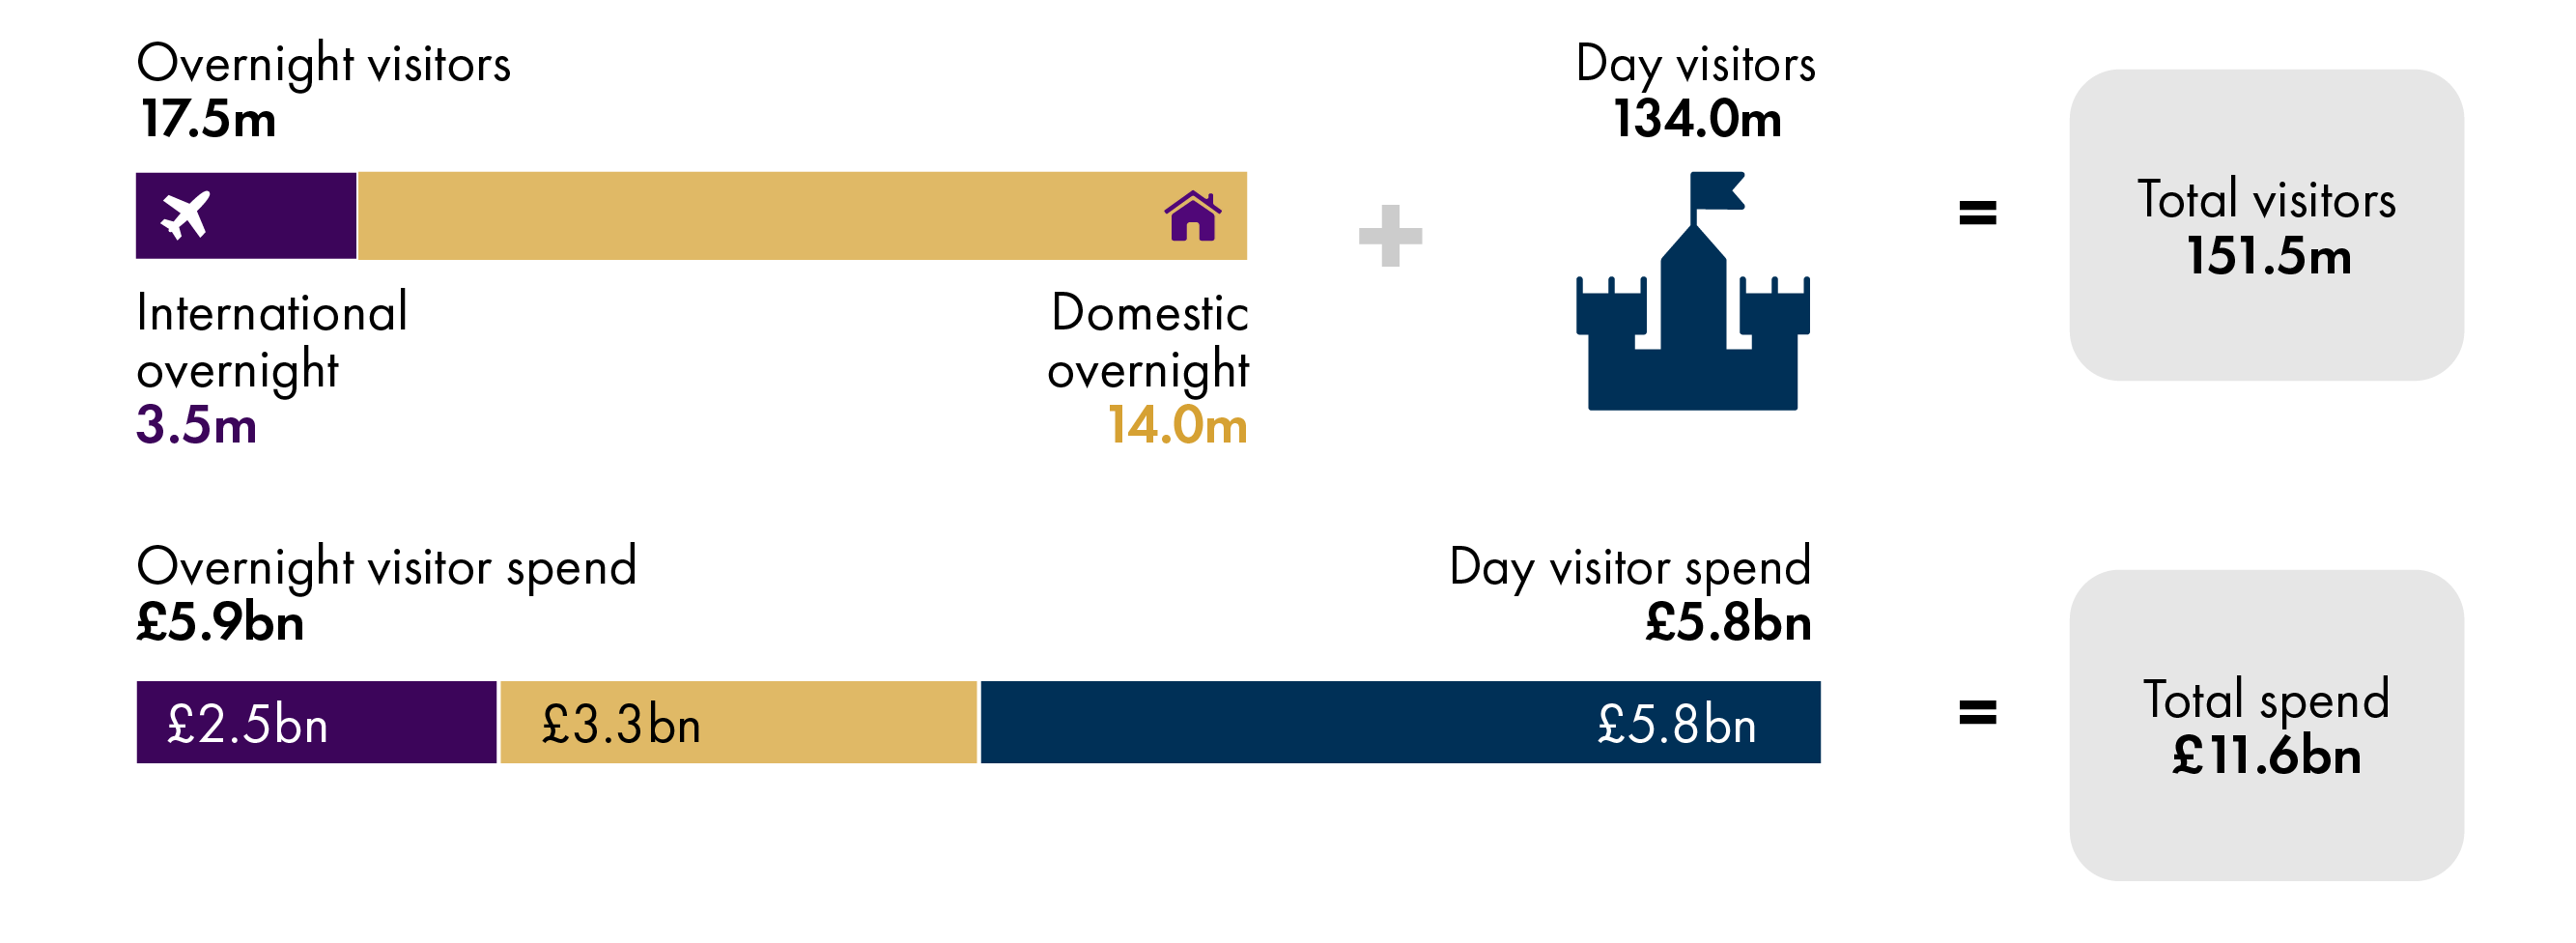 Scotland attracts around 17.5 million overnight visitors and 134 million day visitors annually, generating £11.6 billion in visitor expenditure.